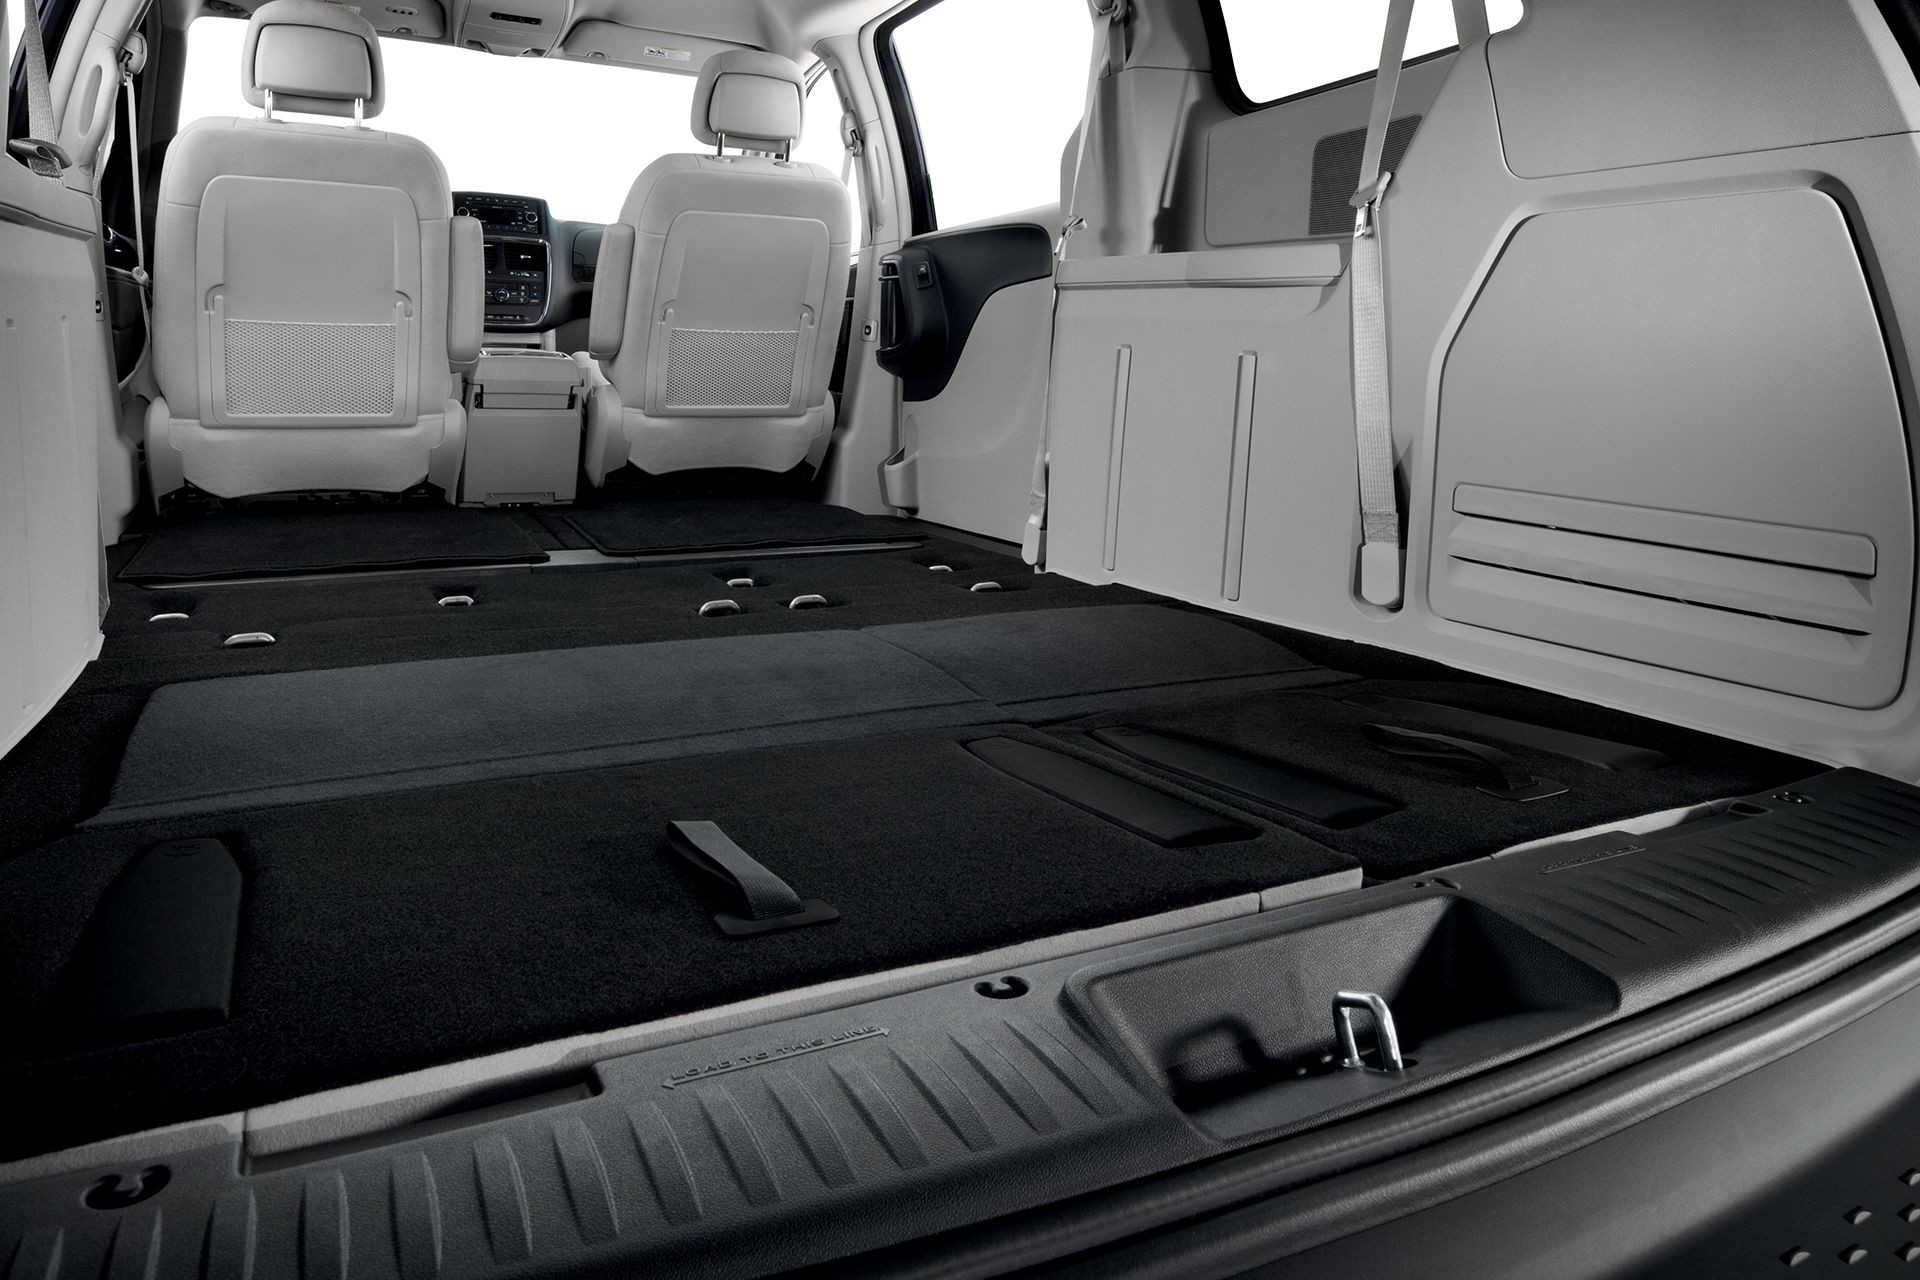 2018 Dodge Grand Caravan Gallery Interior Storage